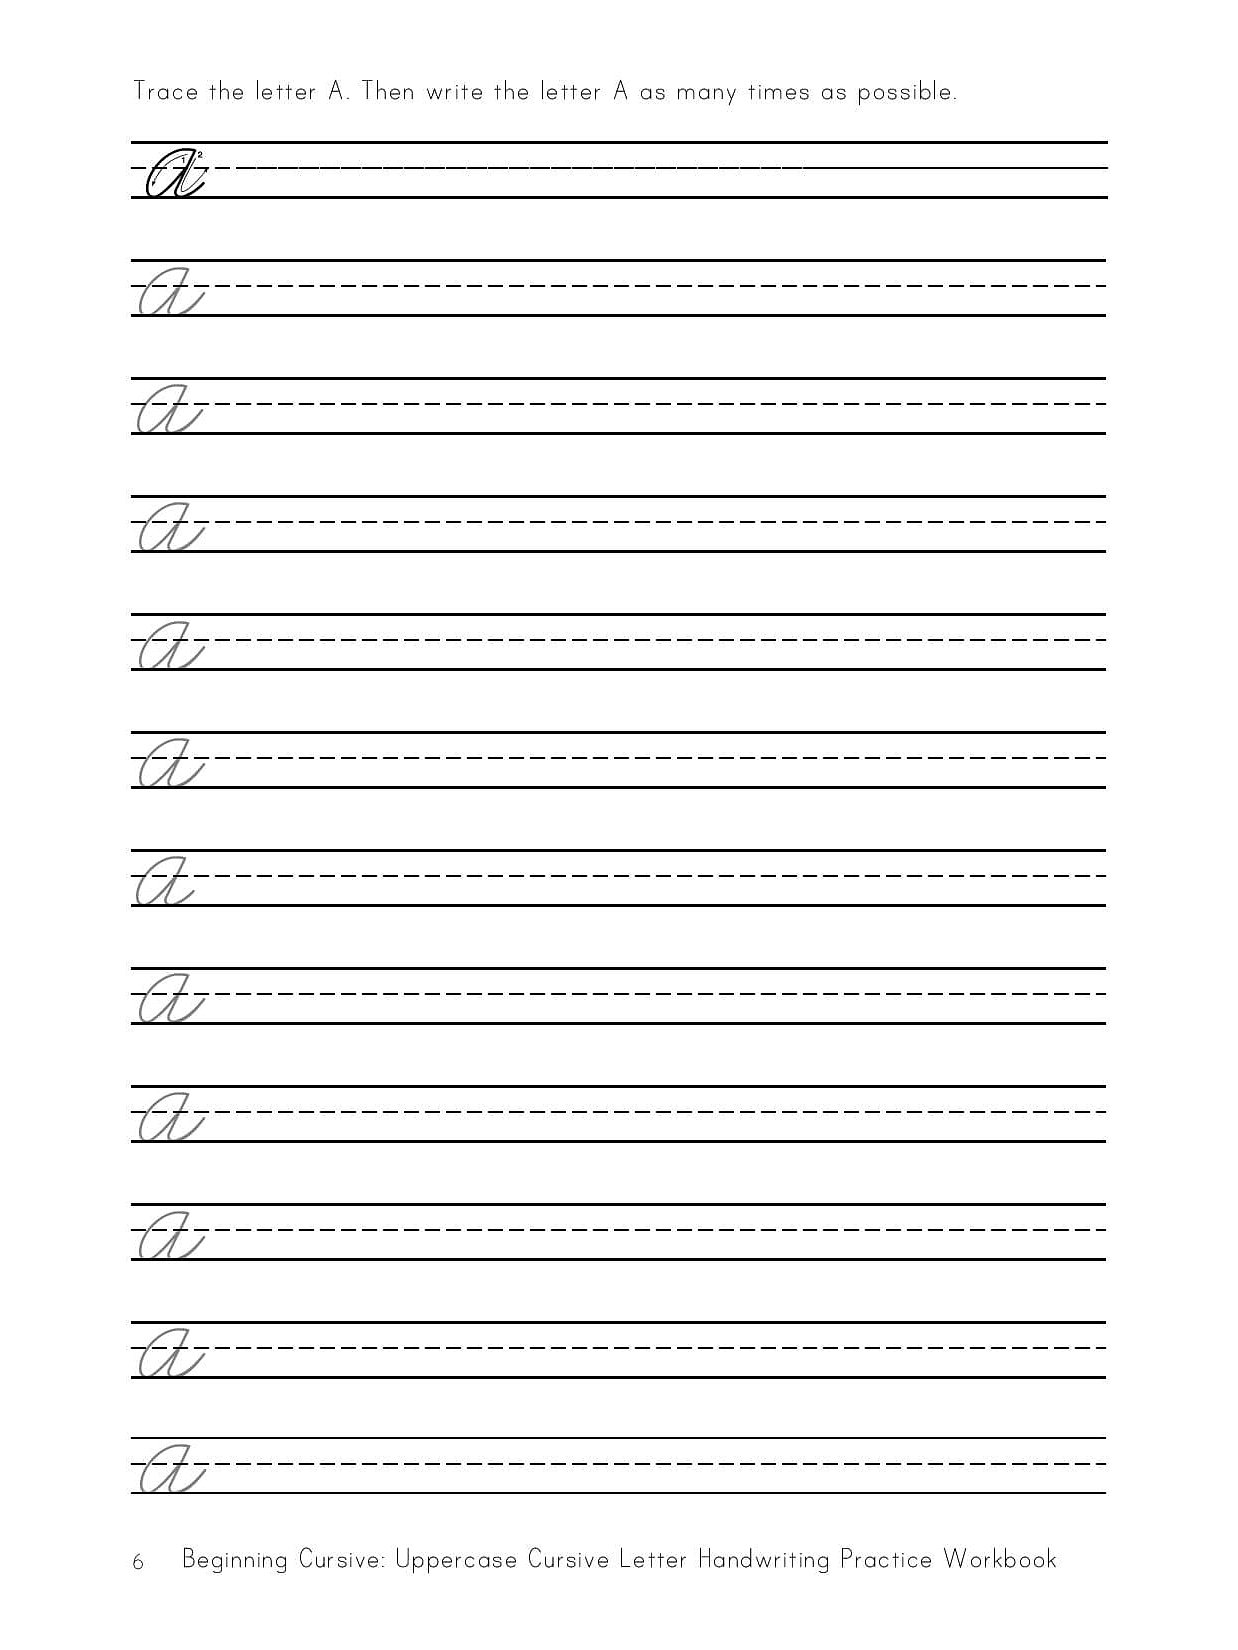 Handwriting worksheets cursive pdf